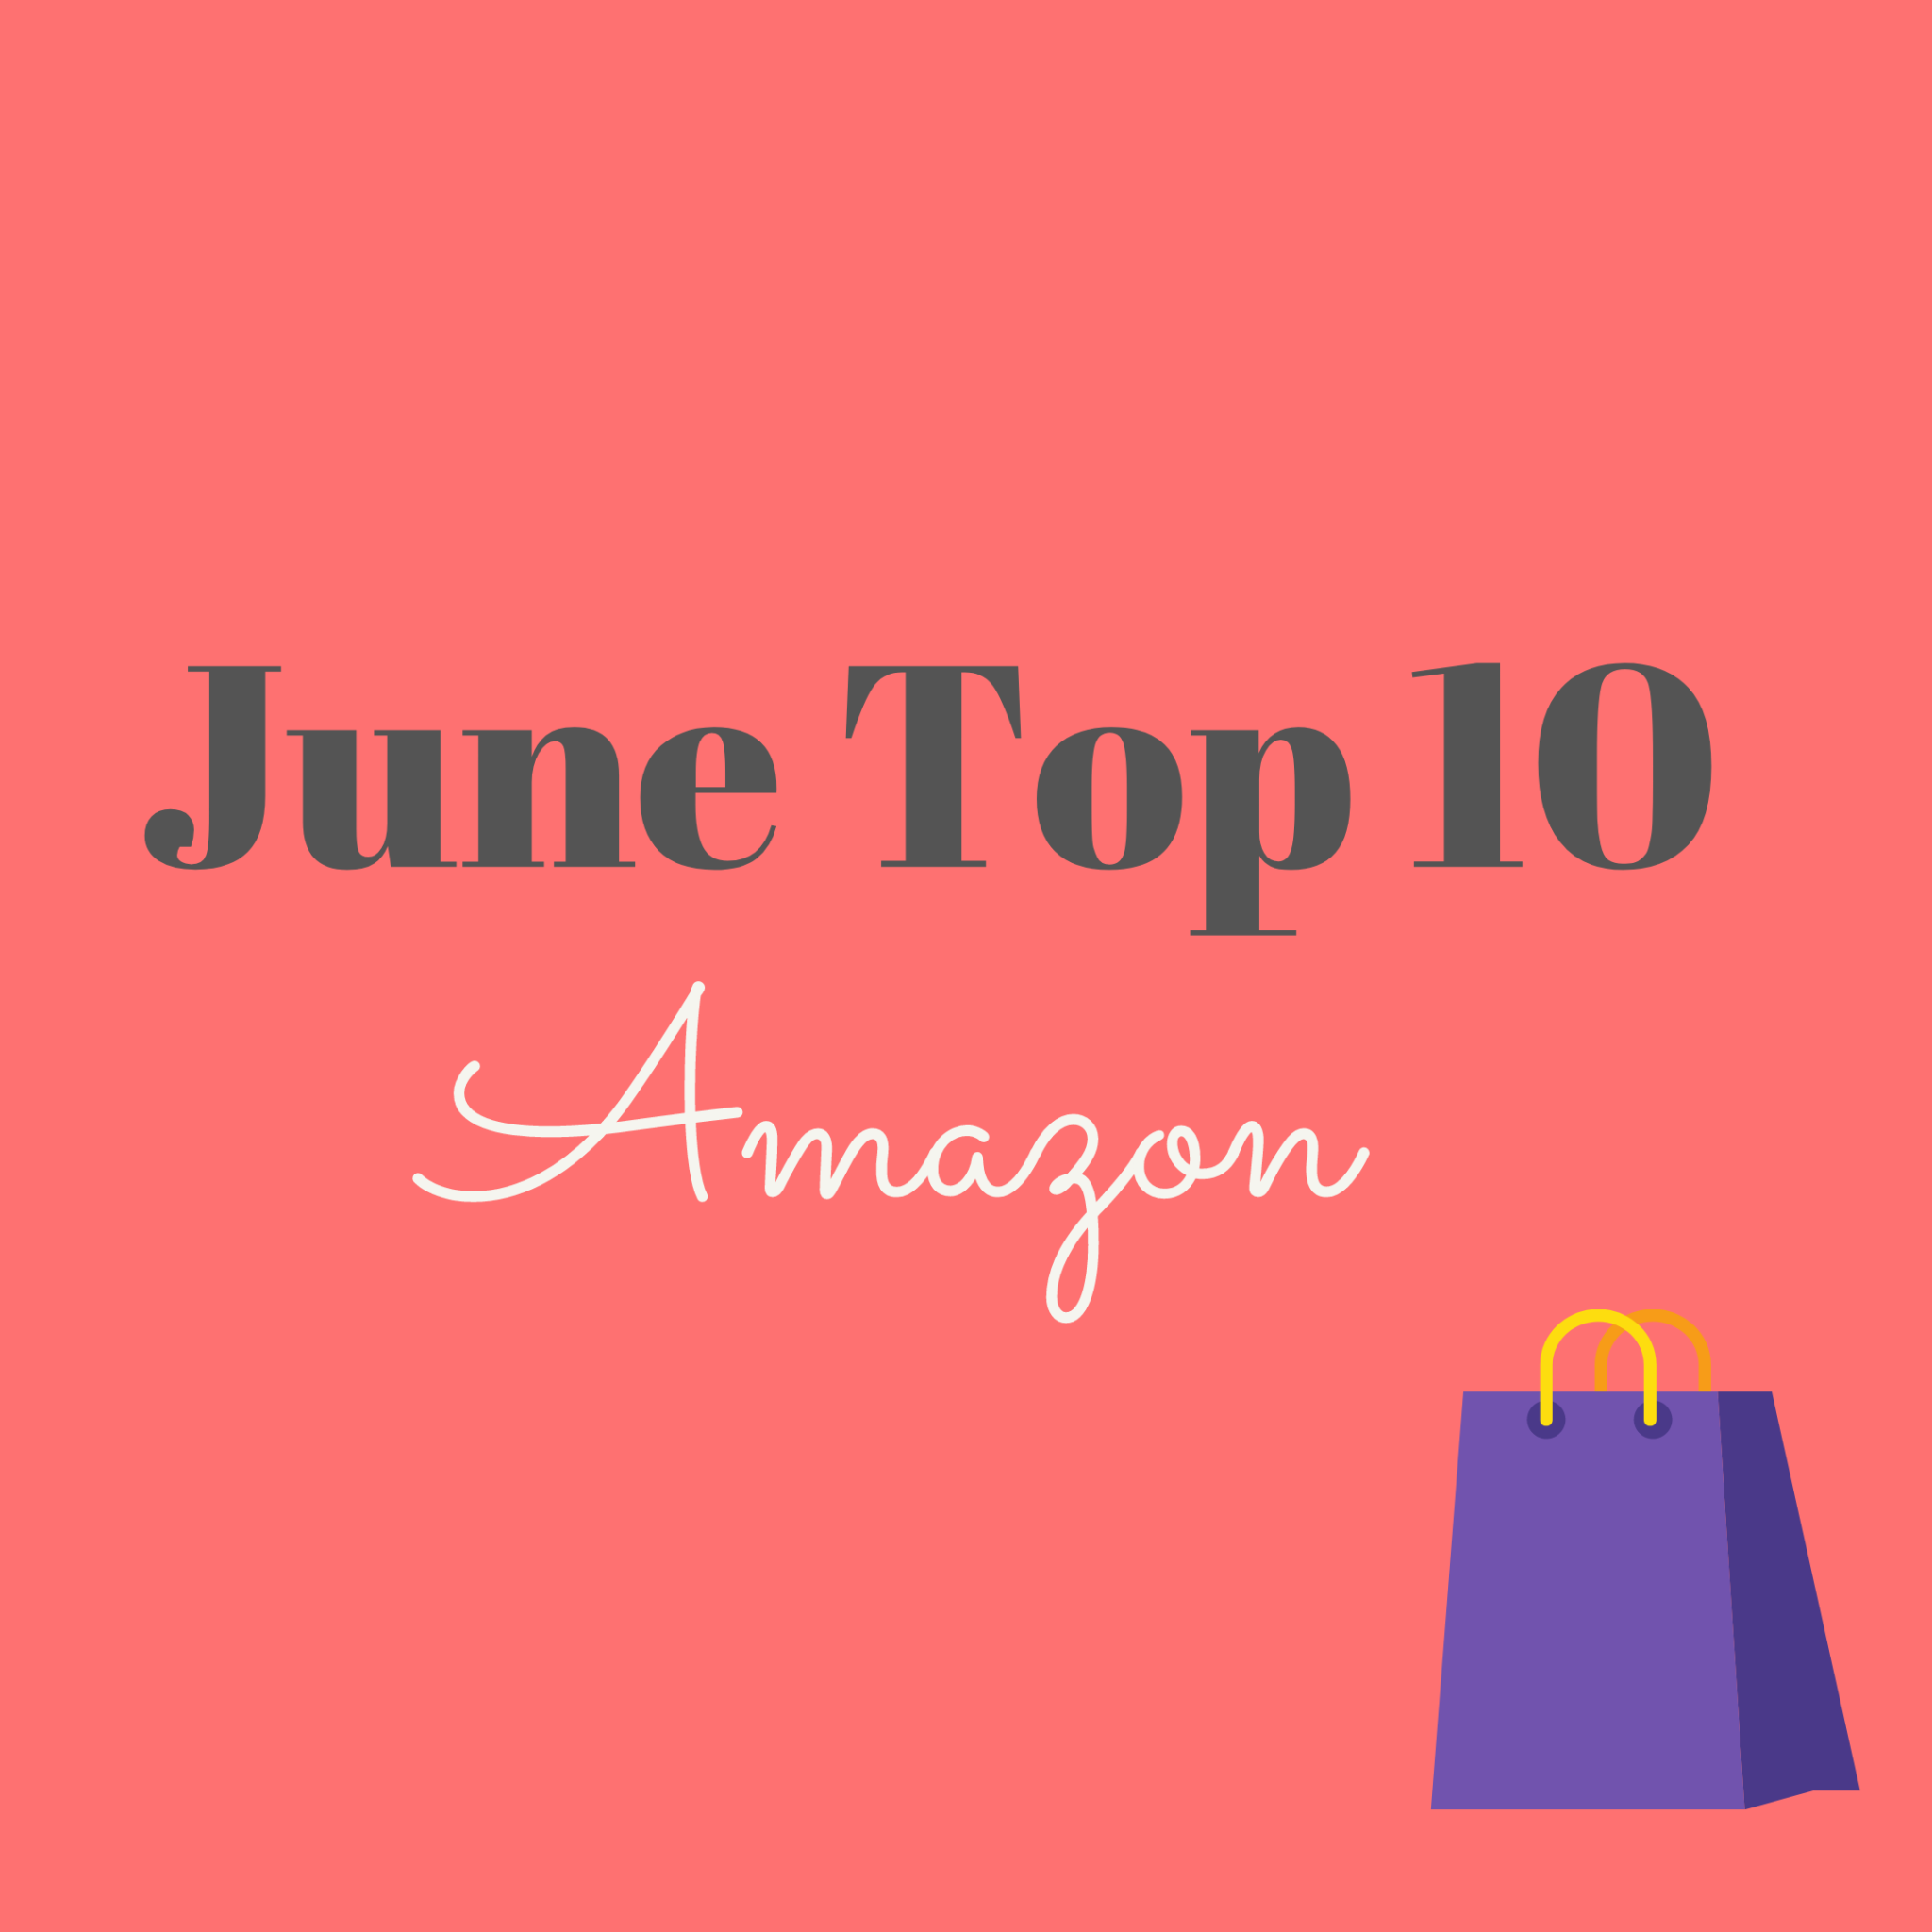 June Top 10 Sellers